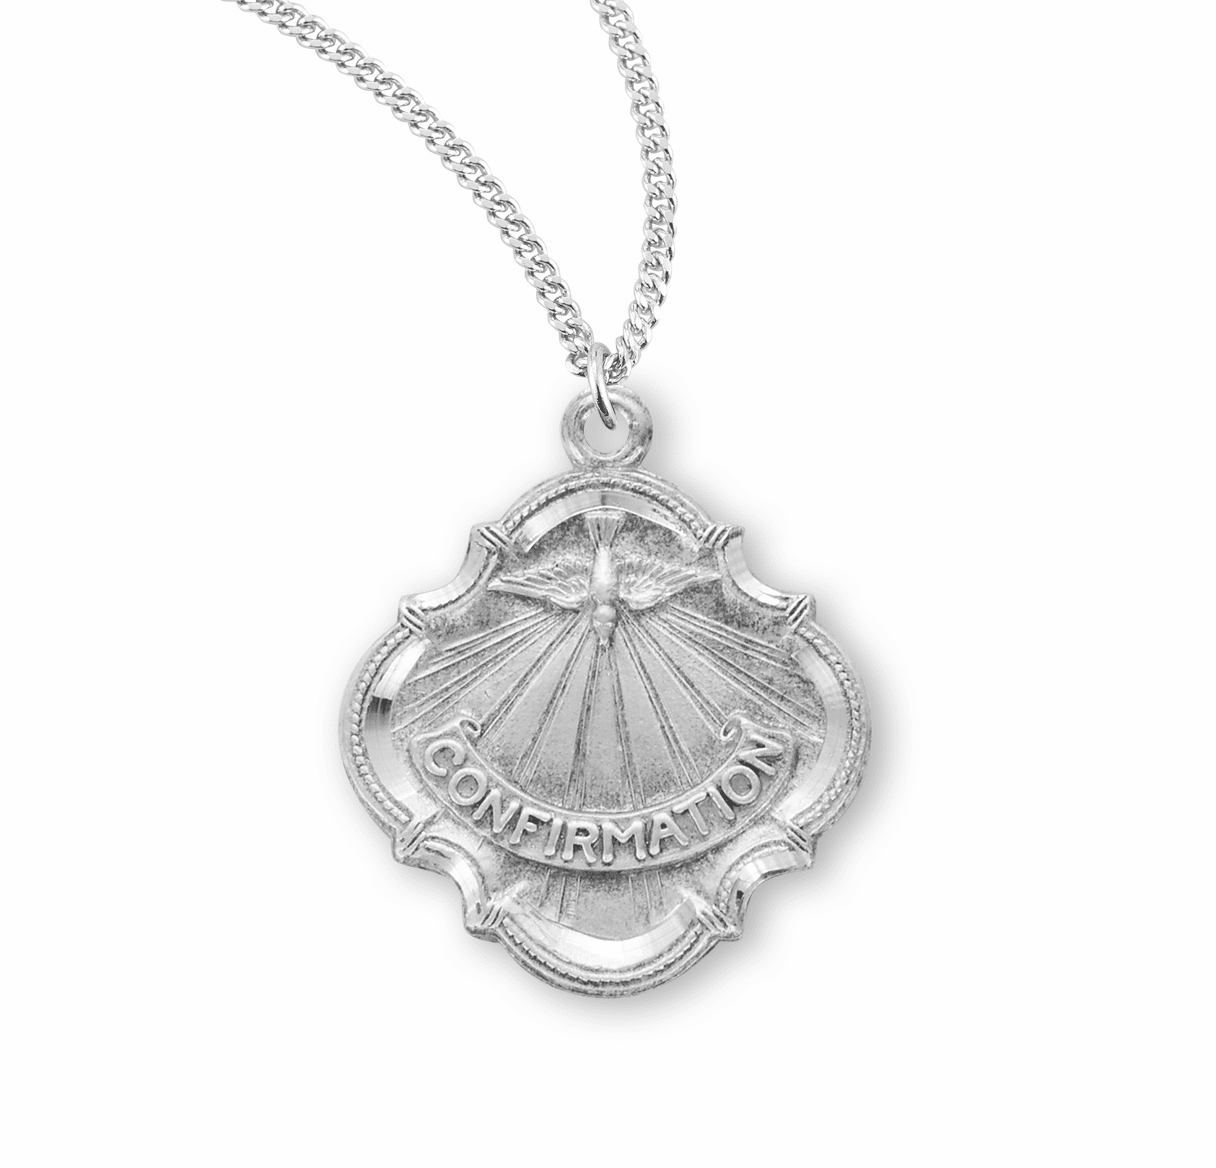 HMH Religious Gifts of the Holy Spirit Confirmation Medal Necklace